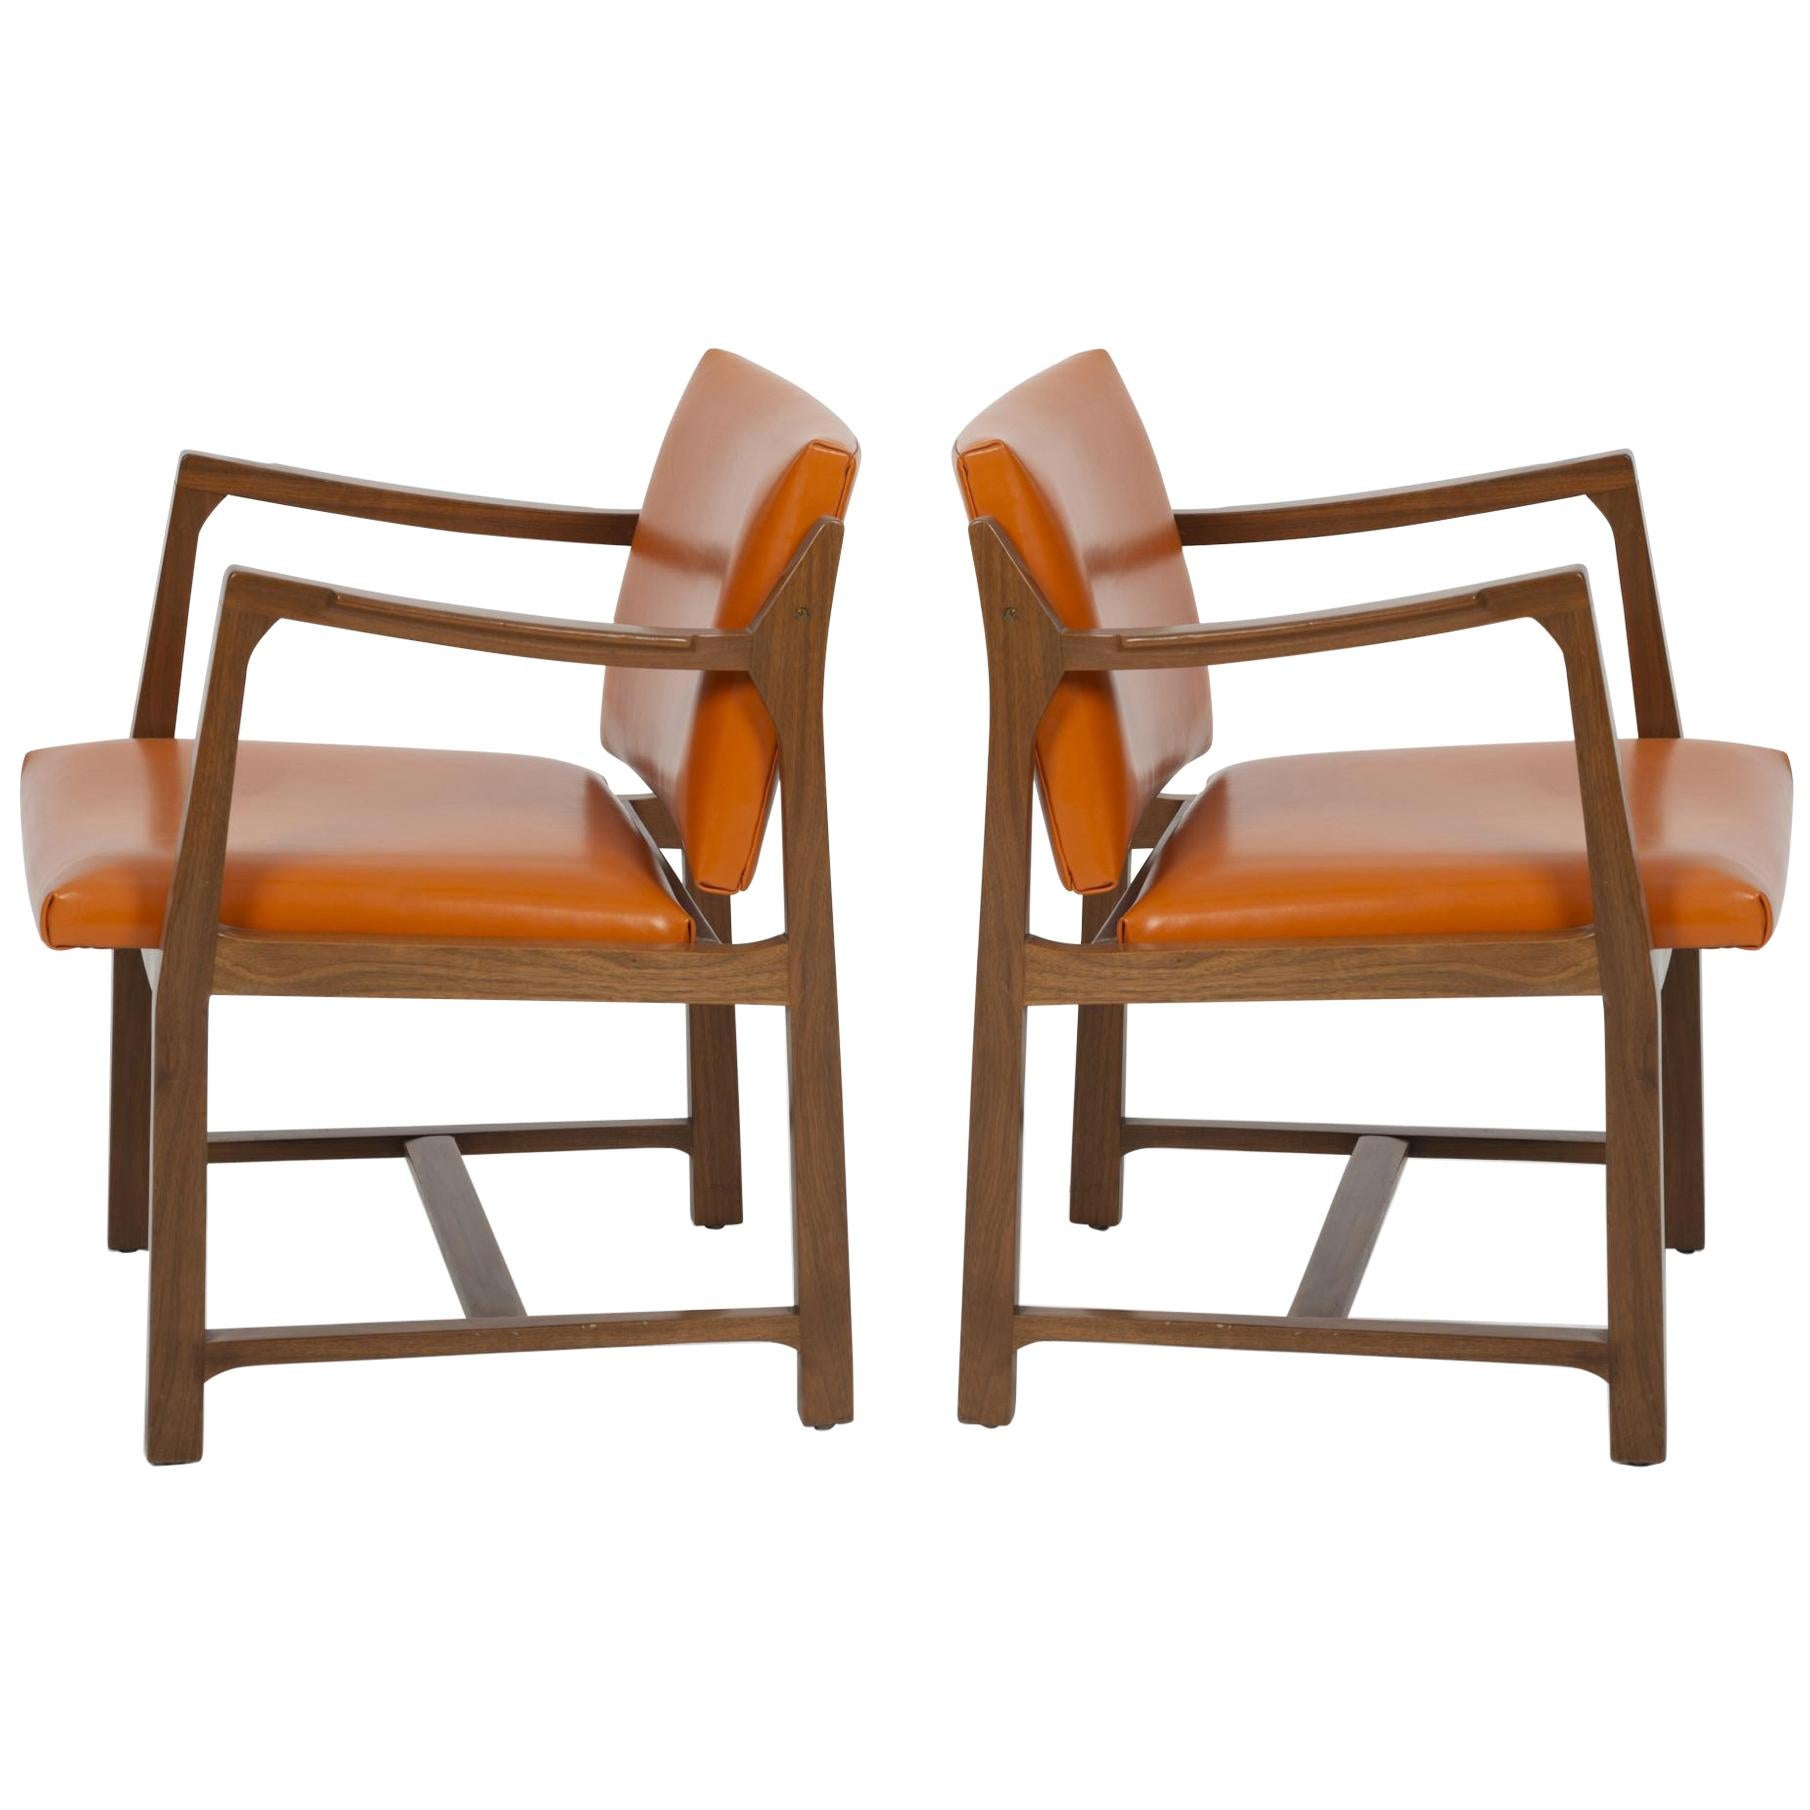 Pair of Edward Wormley for Dunbar Occasional Chairs